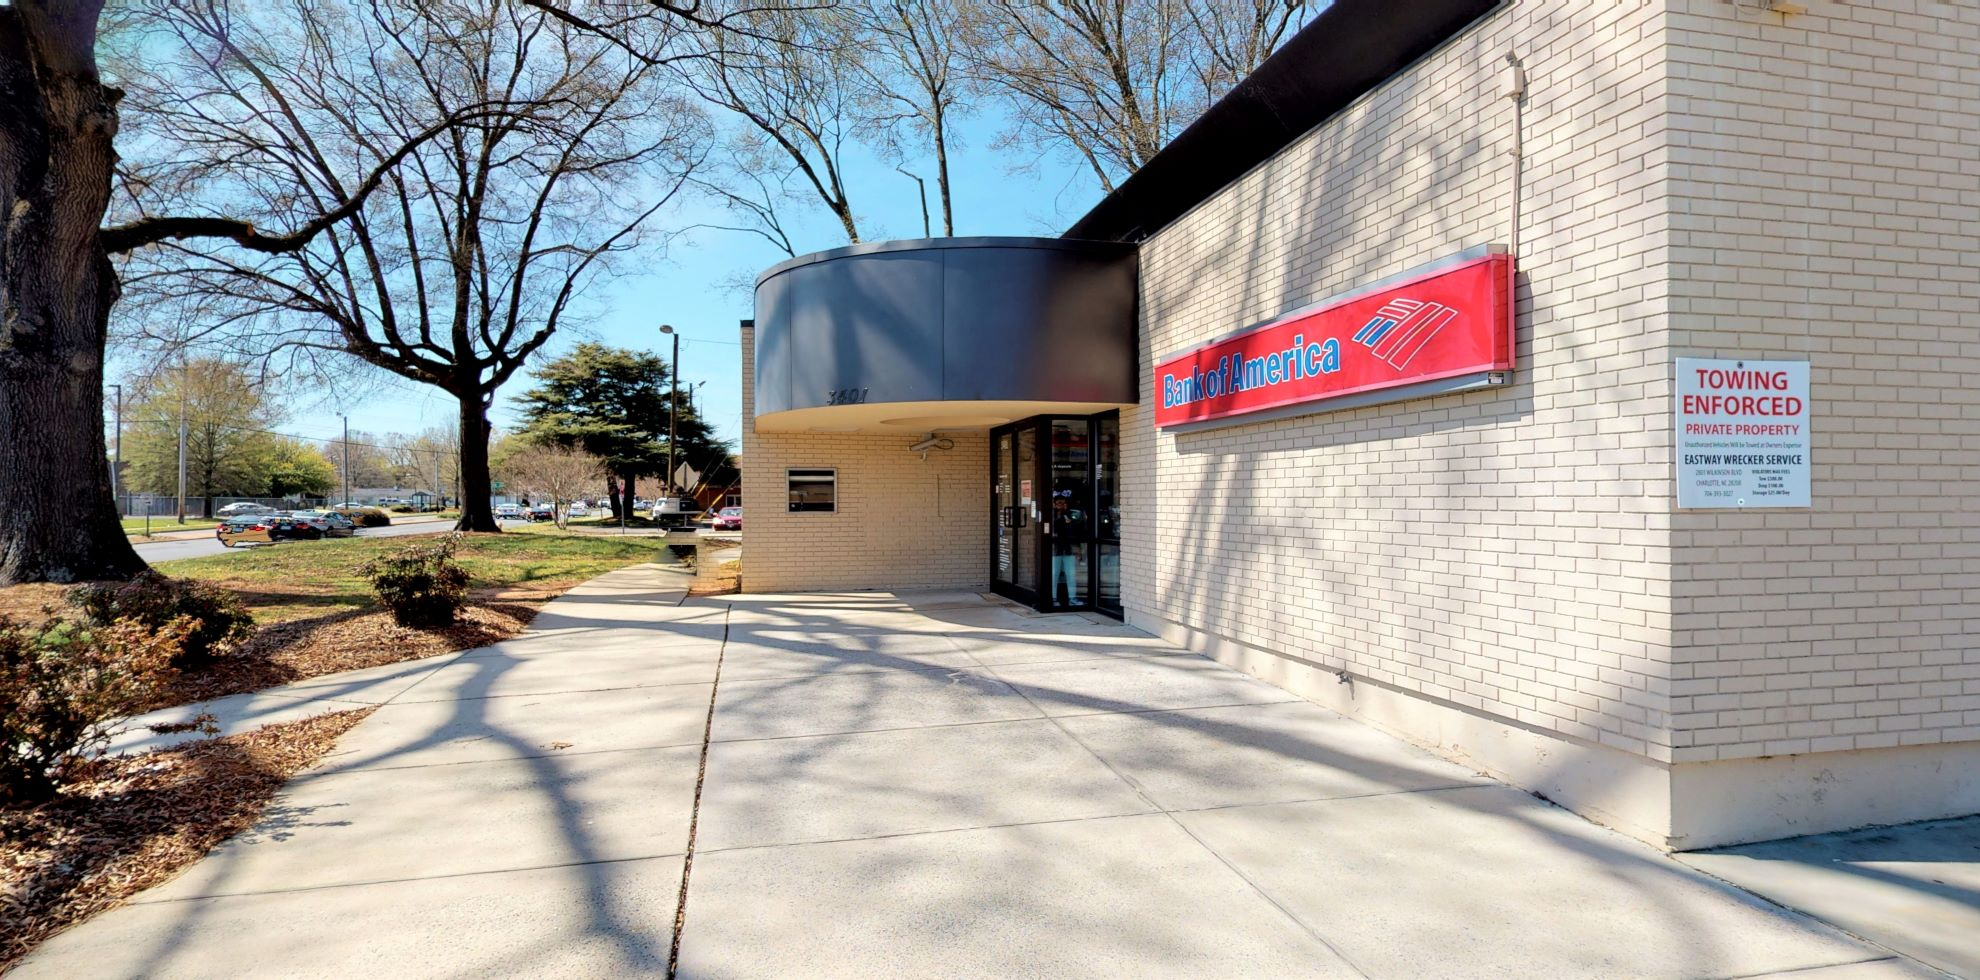 Bank of America financial center with drive-thru ATM | 3401 The Plaza, Charlotte, NC 28205